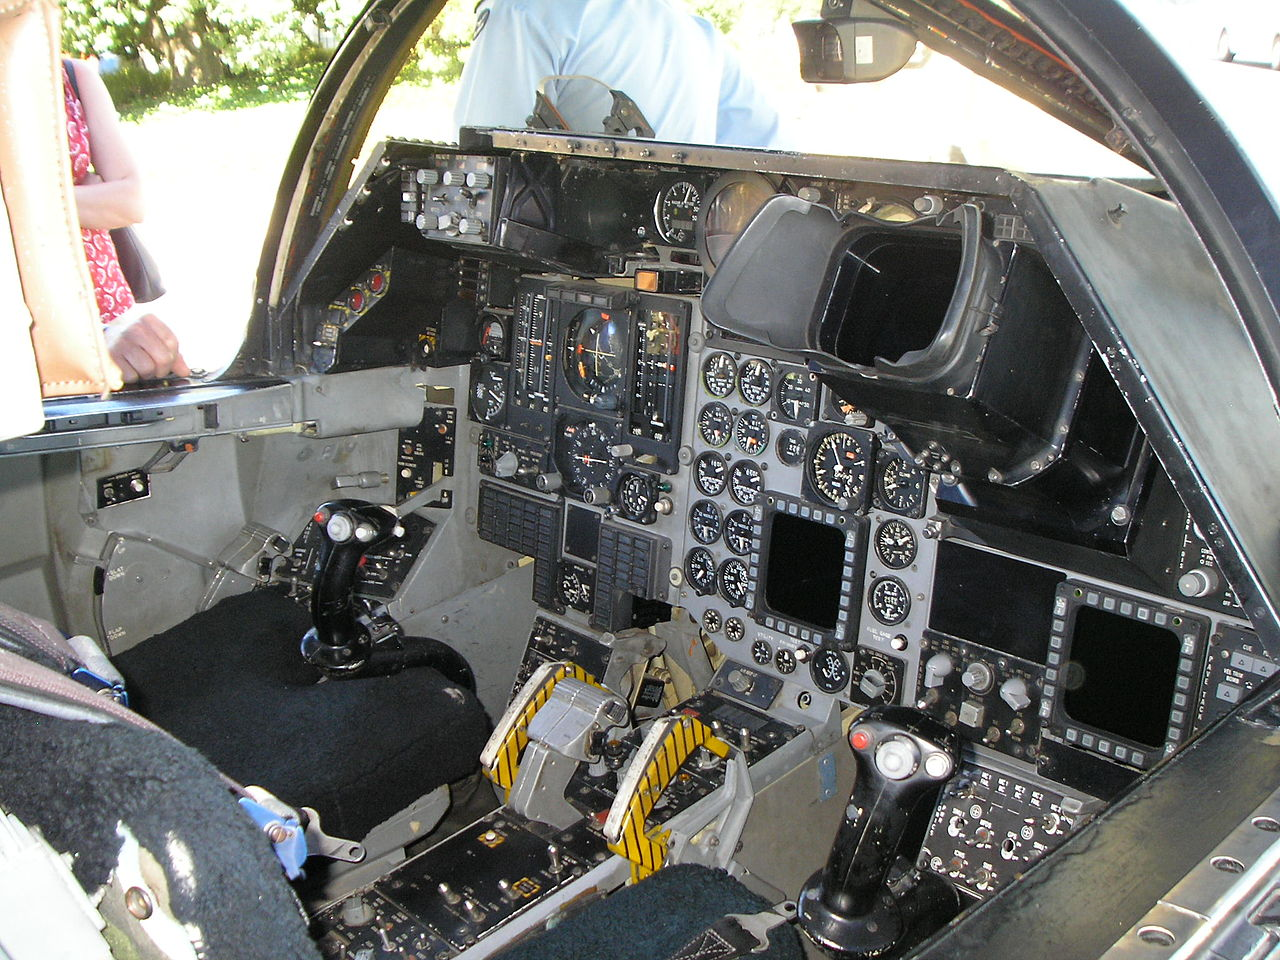 File:F-111C cockpit circa 1978.JPG - Wikimedia Commons